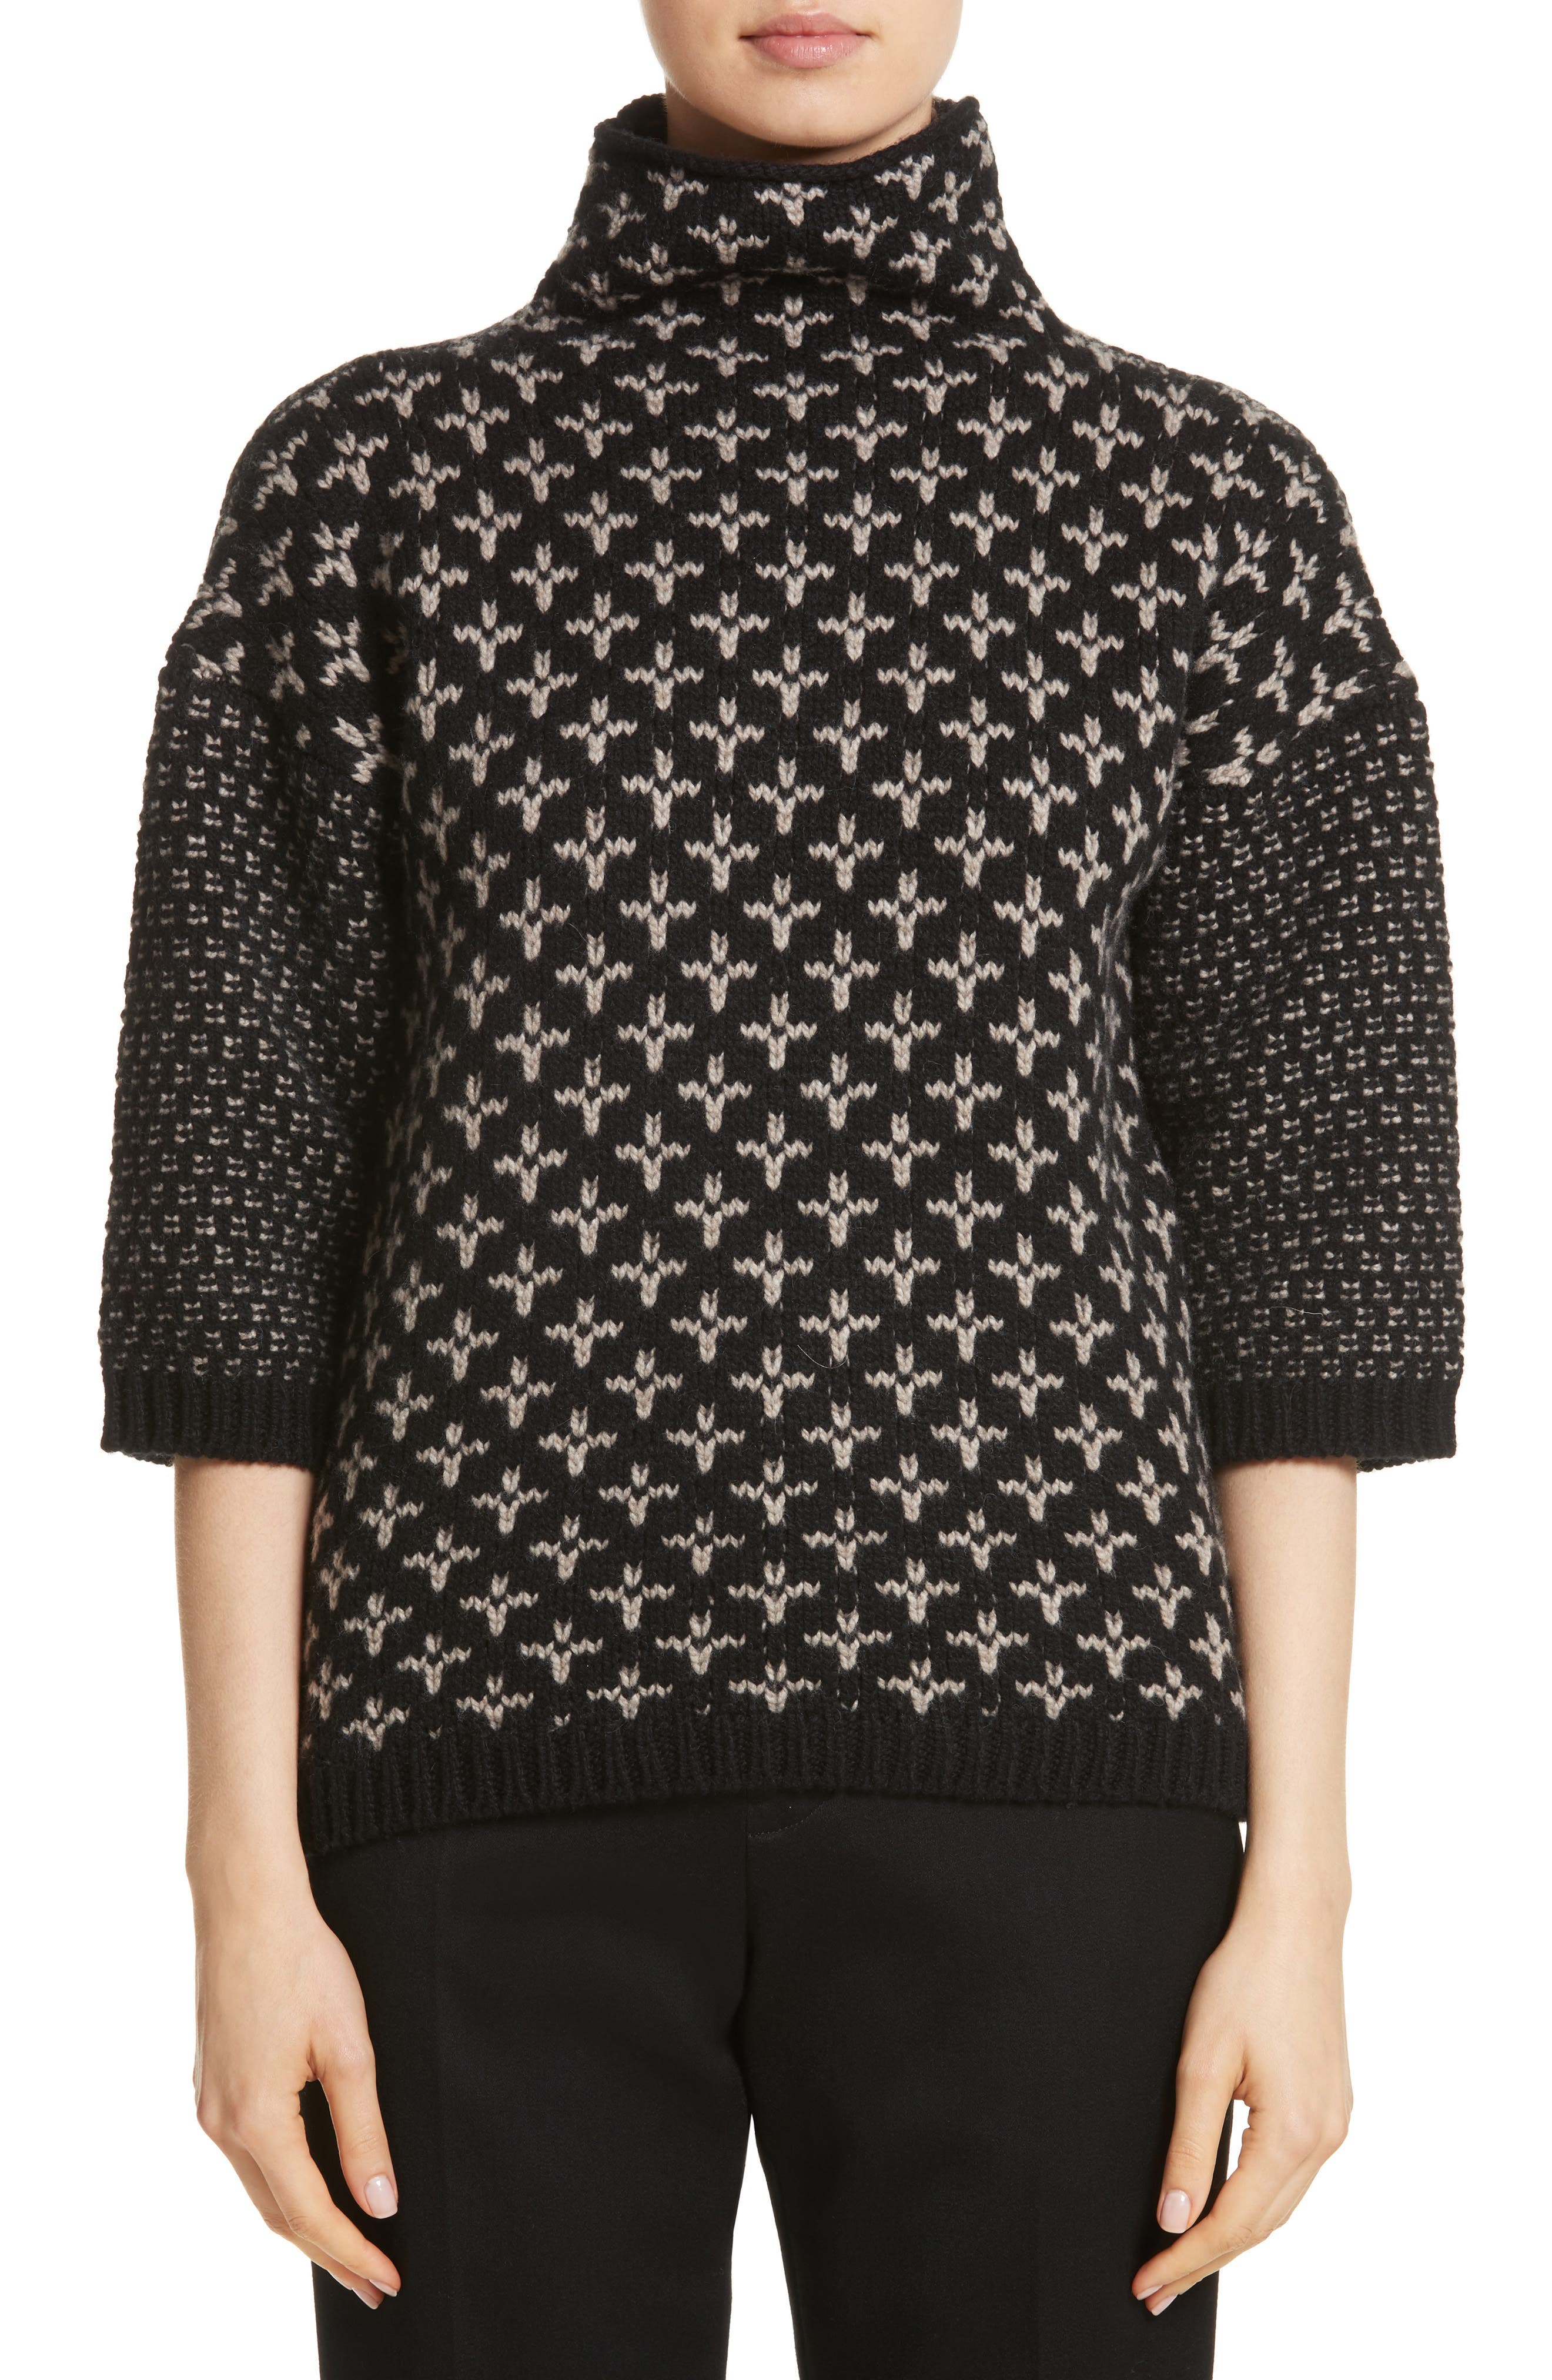 Rana Wool & Cashmere Sweater,                         Main,                         color, Black